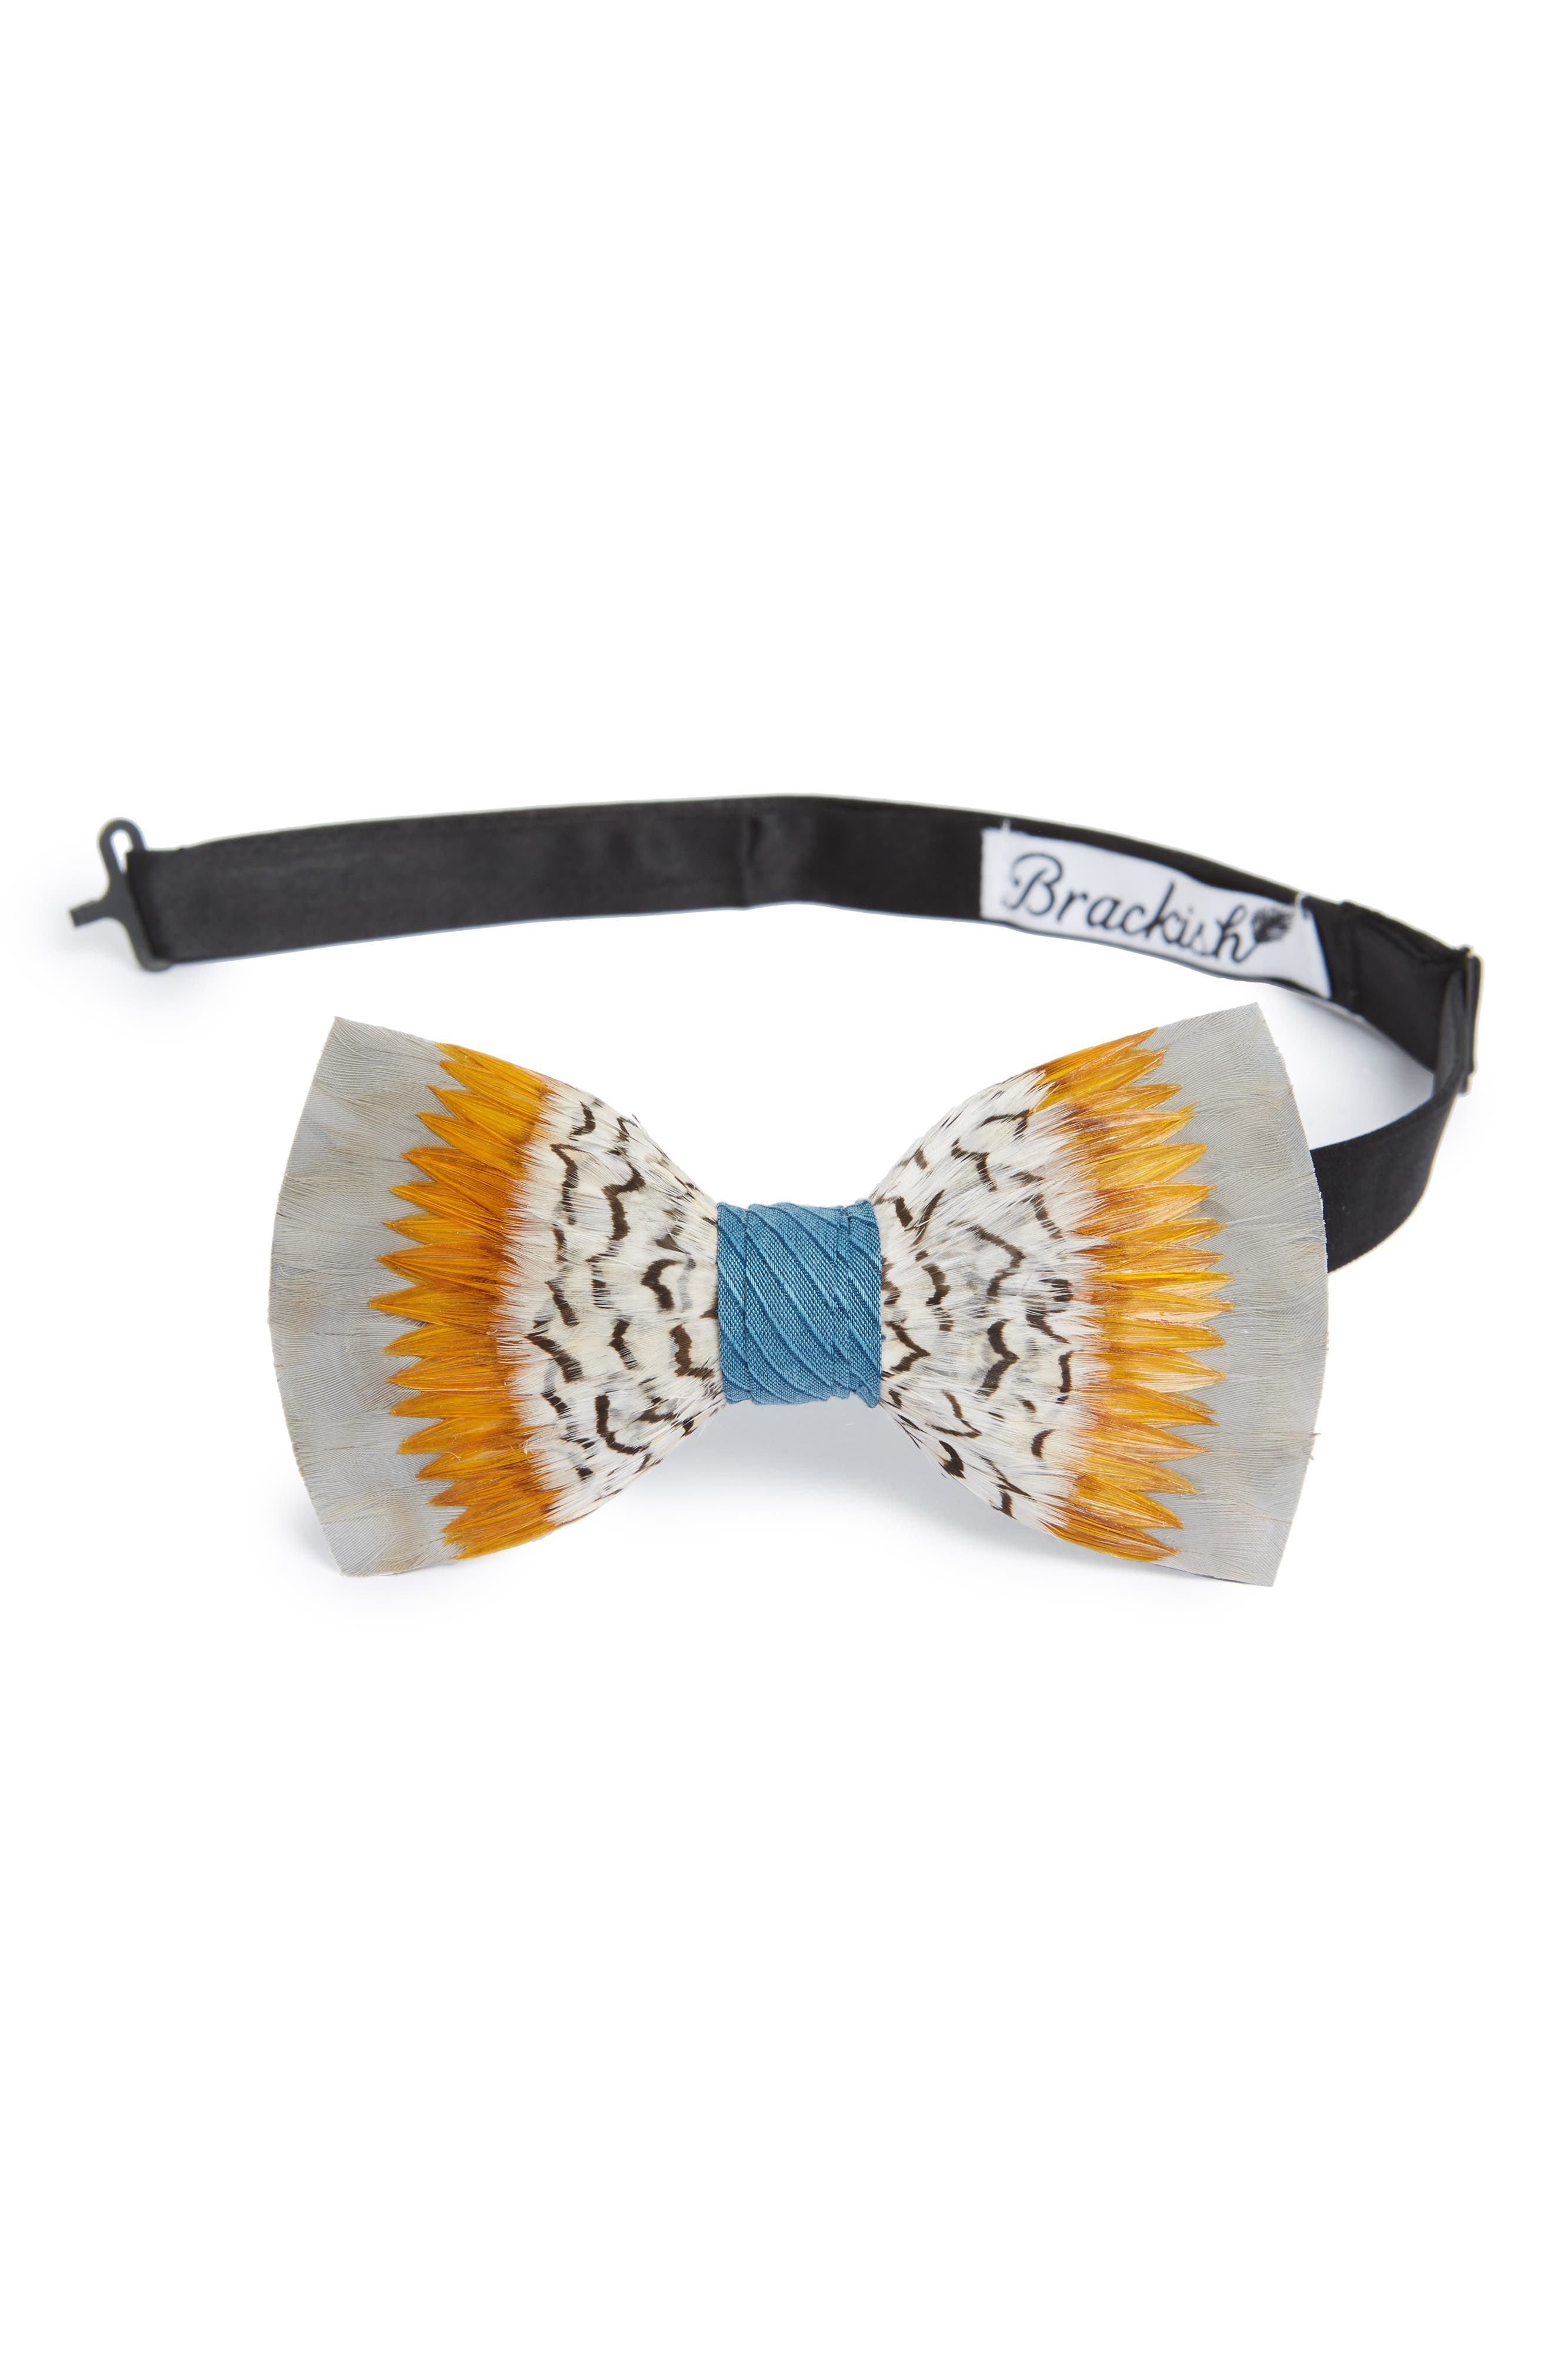 Stono Feather Bow Tie,                         Main,                         color, YELLOW/ GREY